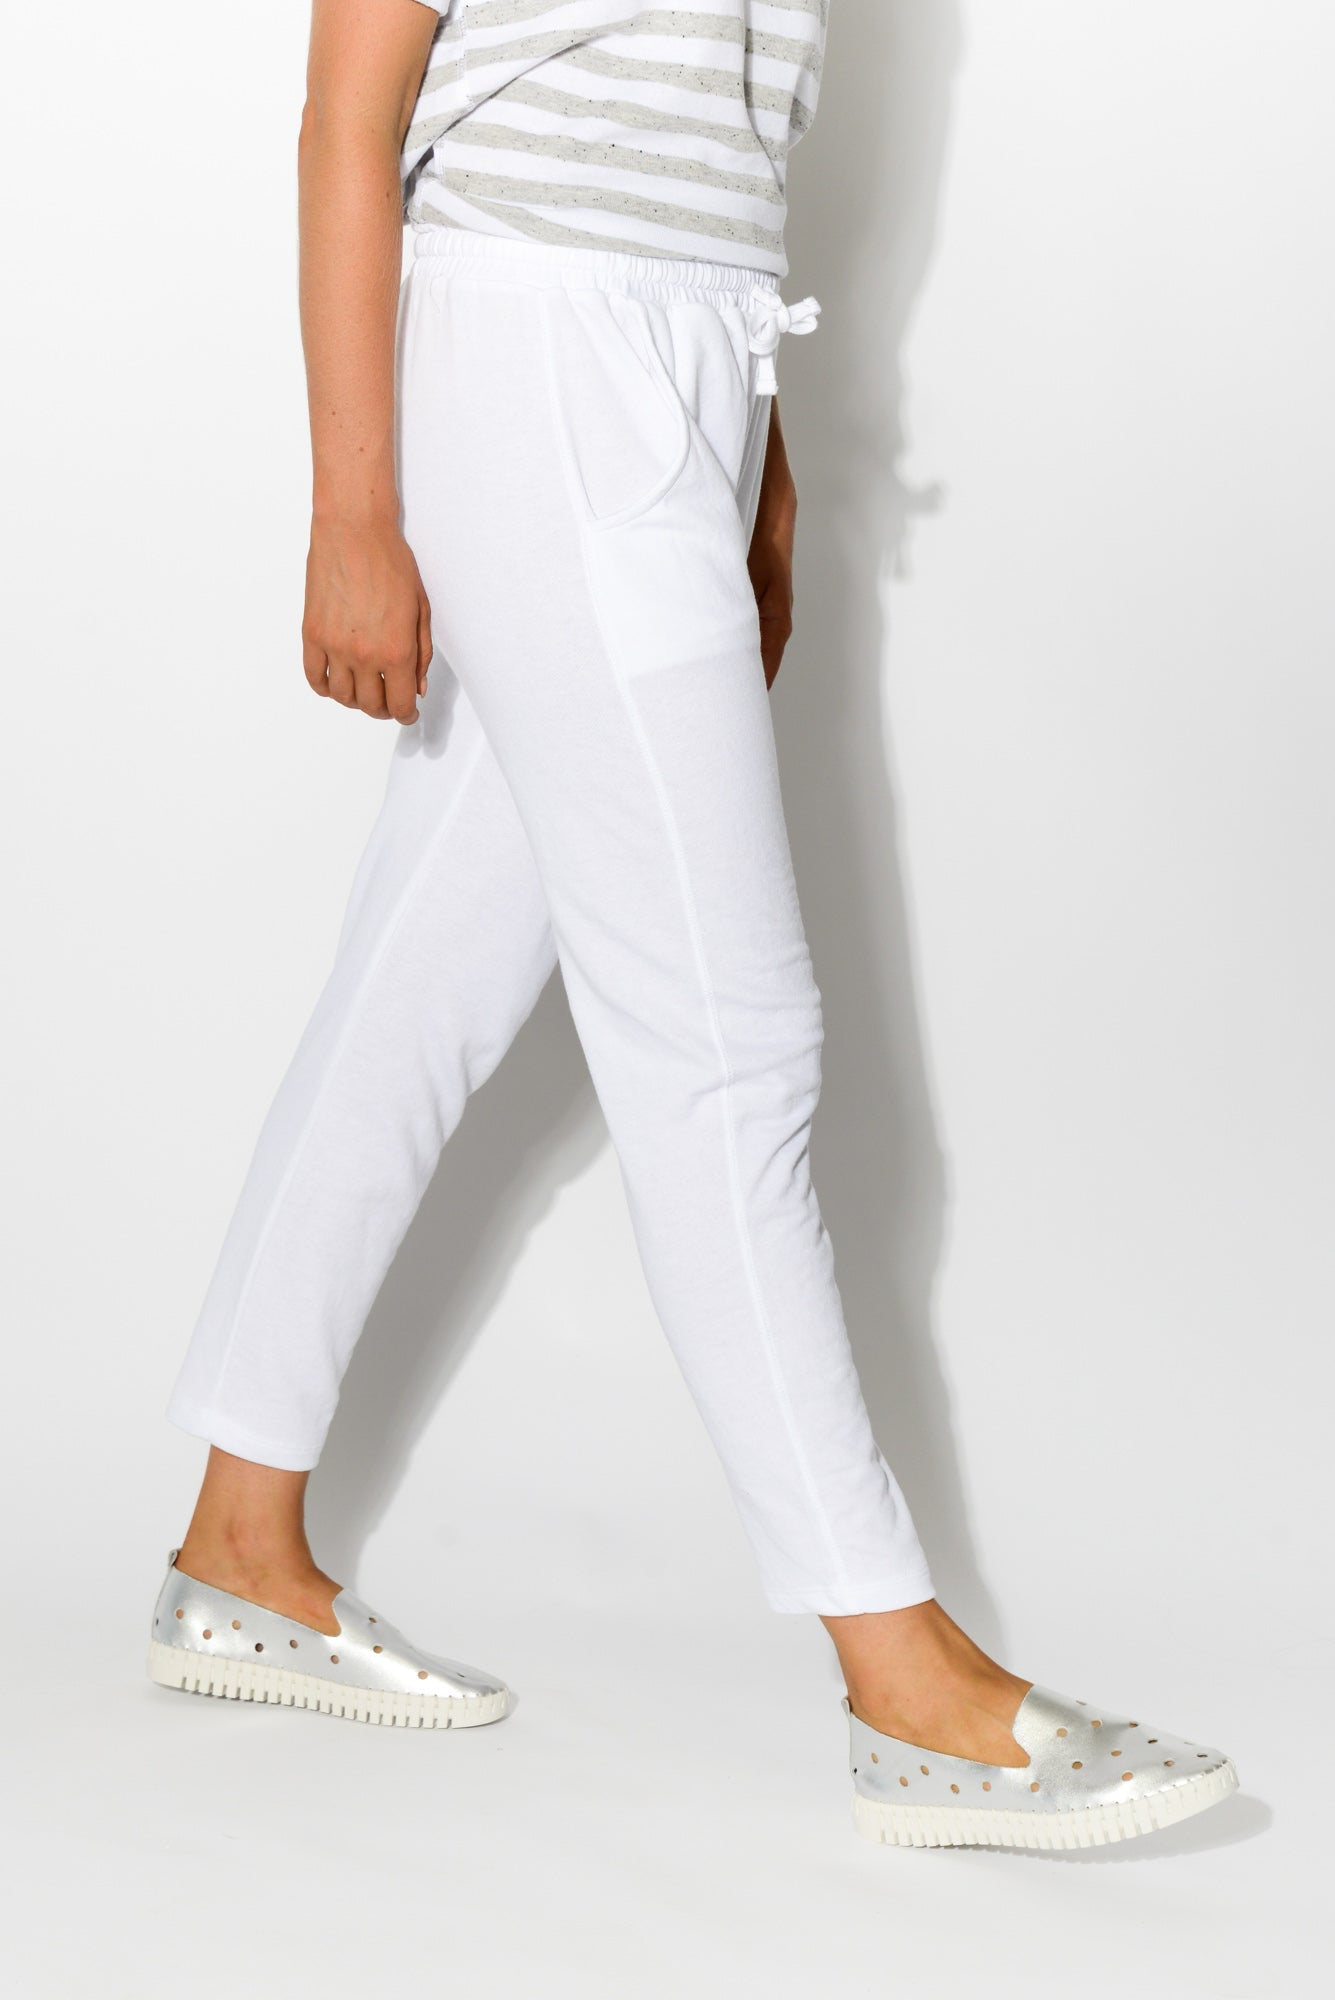 Saxon White Sweat Pant - Blue Bungalow